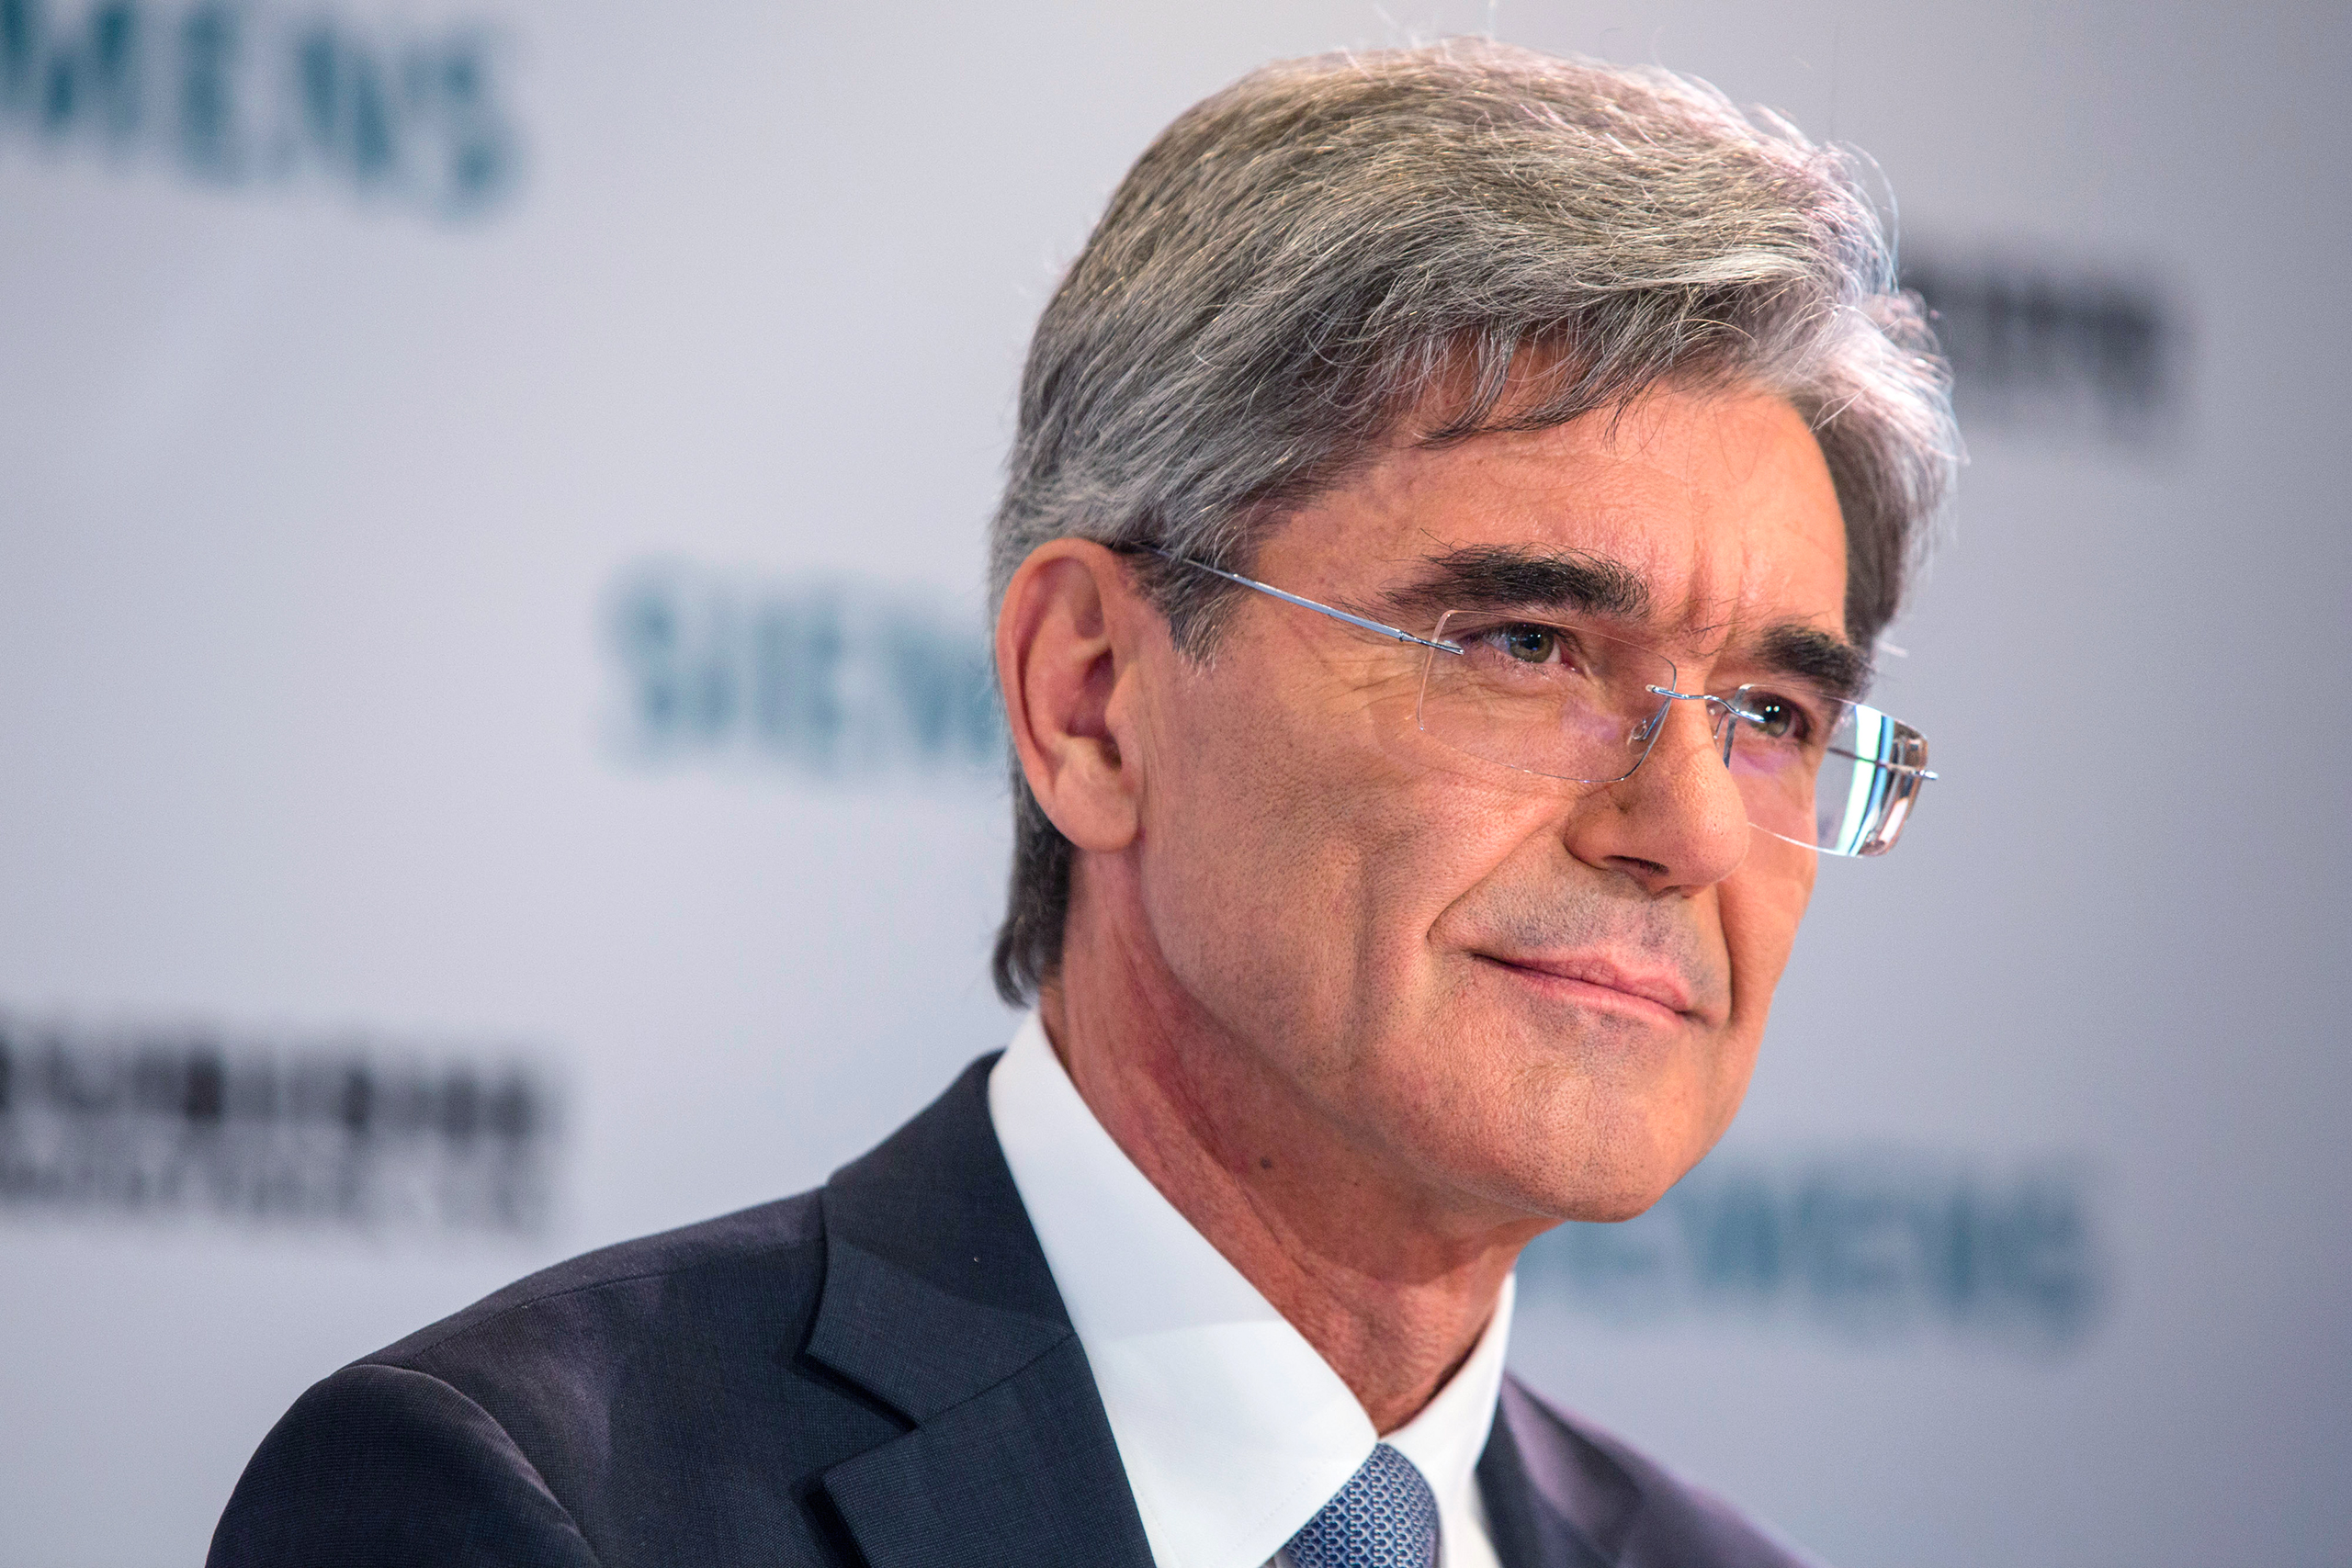 Joe Kaeser, chief executive officer of Siemens AG